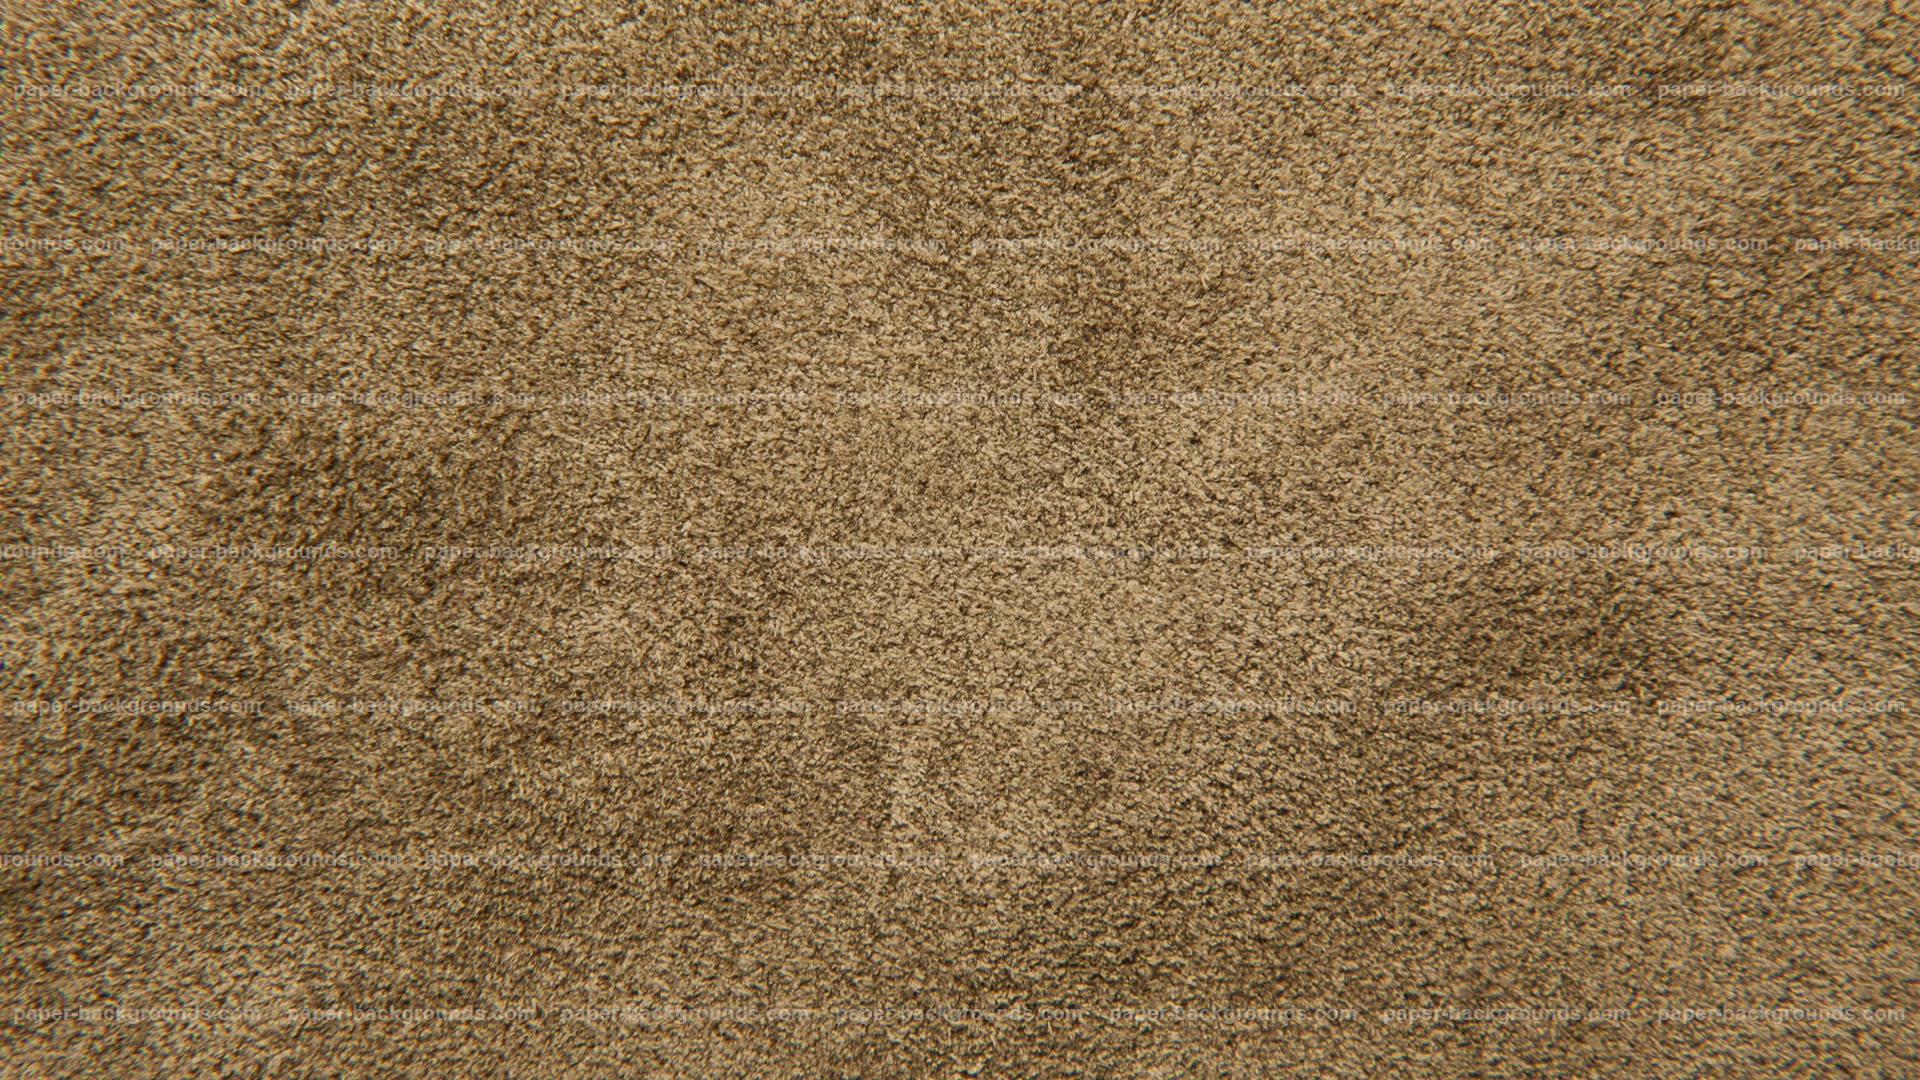 91 brown textured wallpapers images of brown textured for Modern textured wallpaper